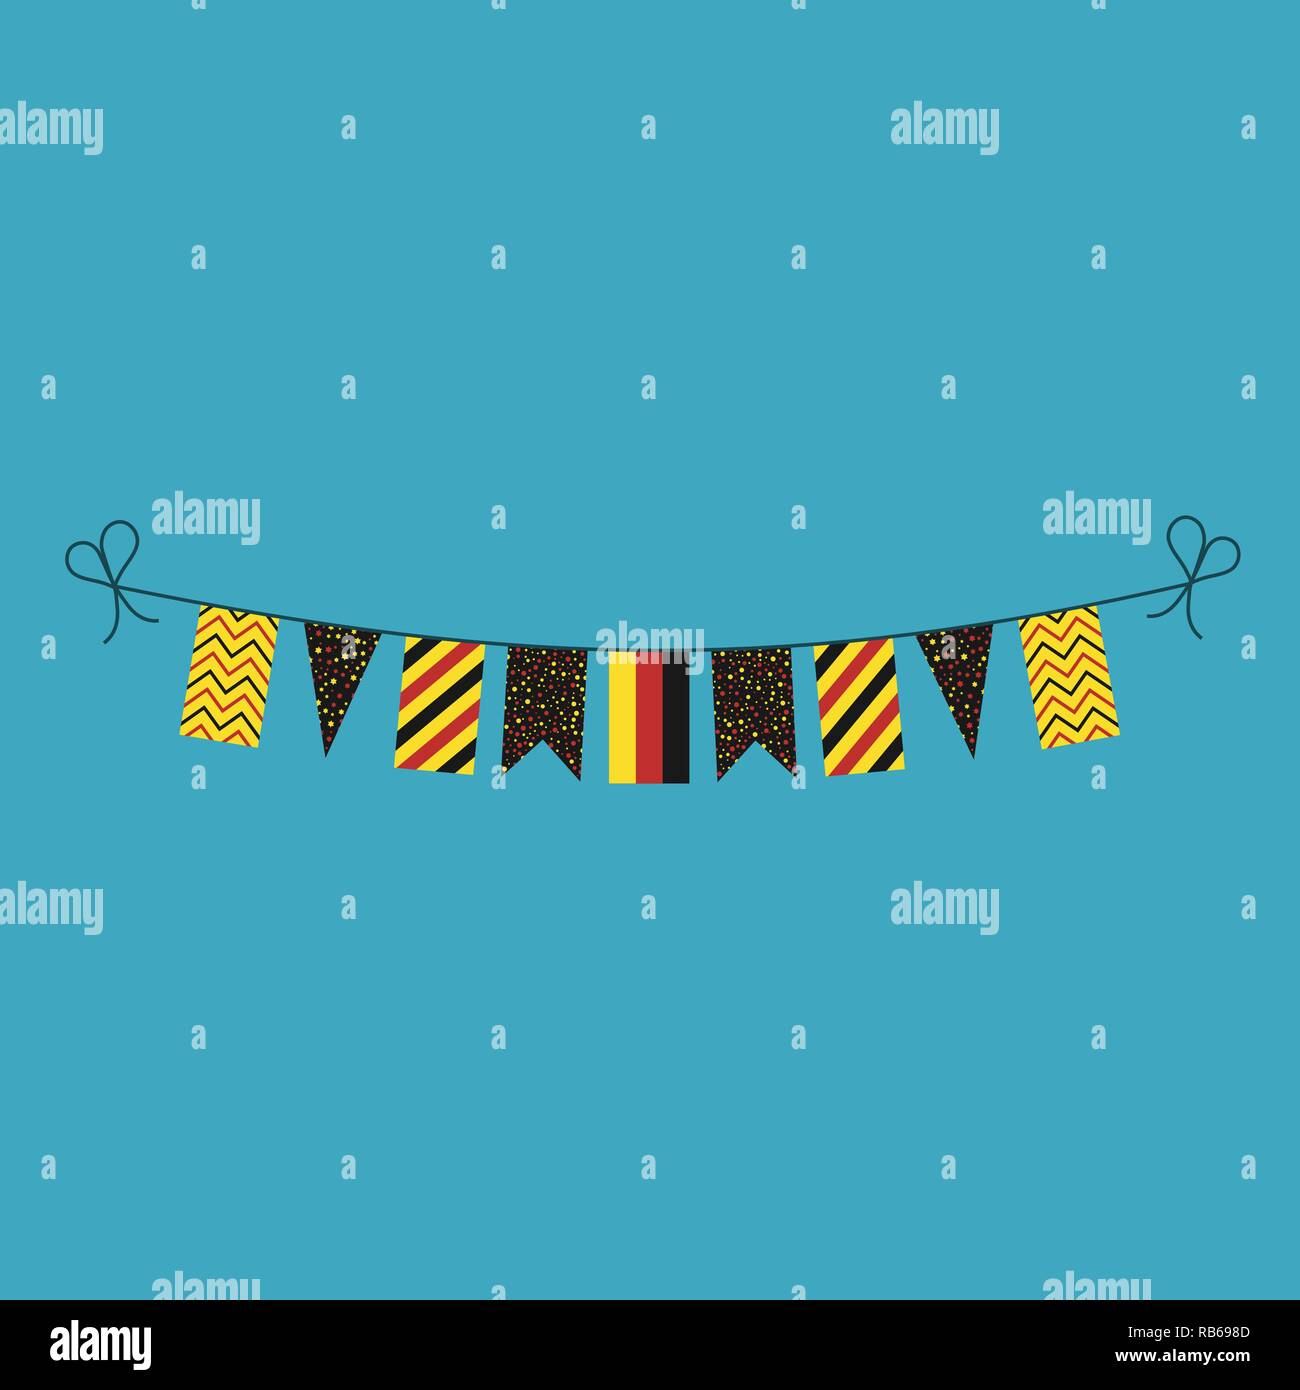 Decorations bunting flags for Germany national day holiday in flat design. Independence day or National day holiday concept. - Stock Vector